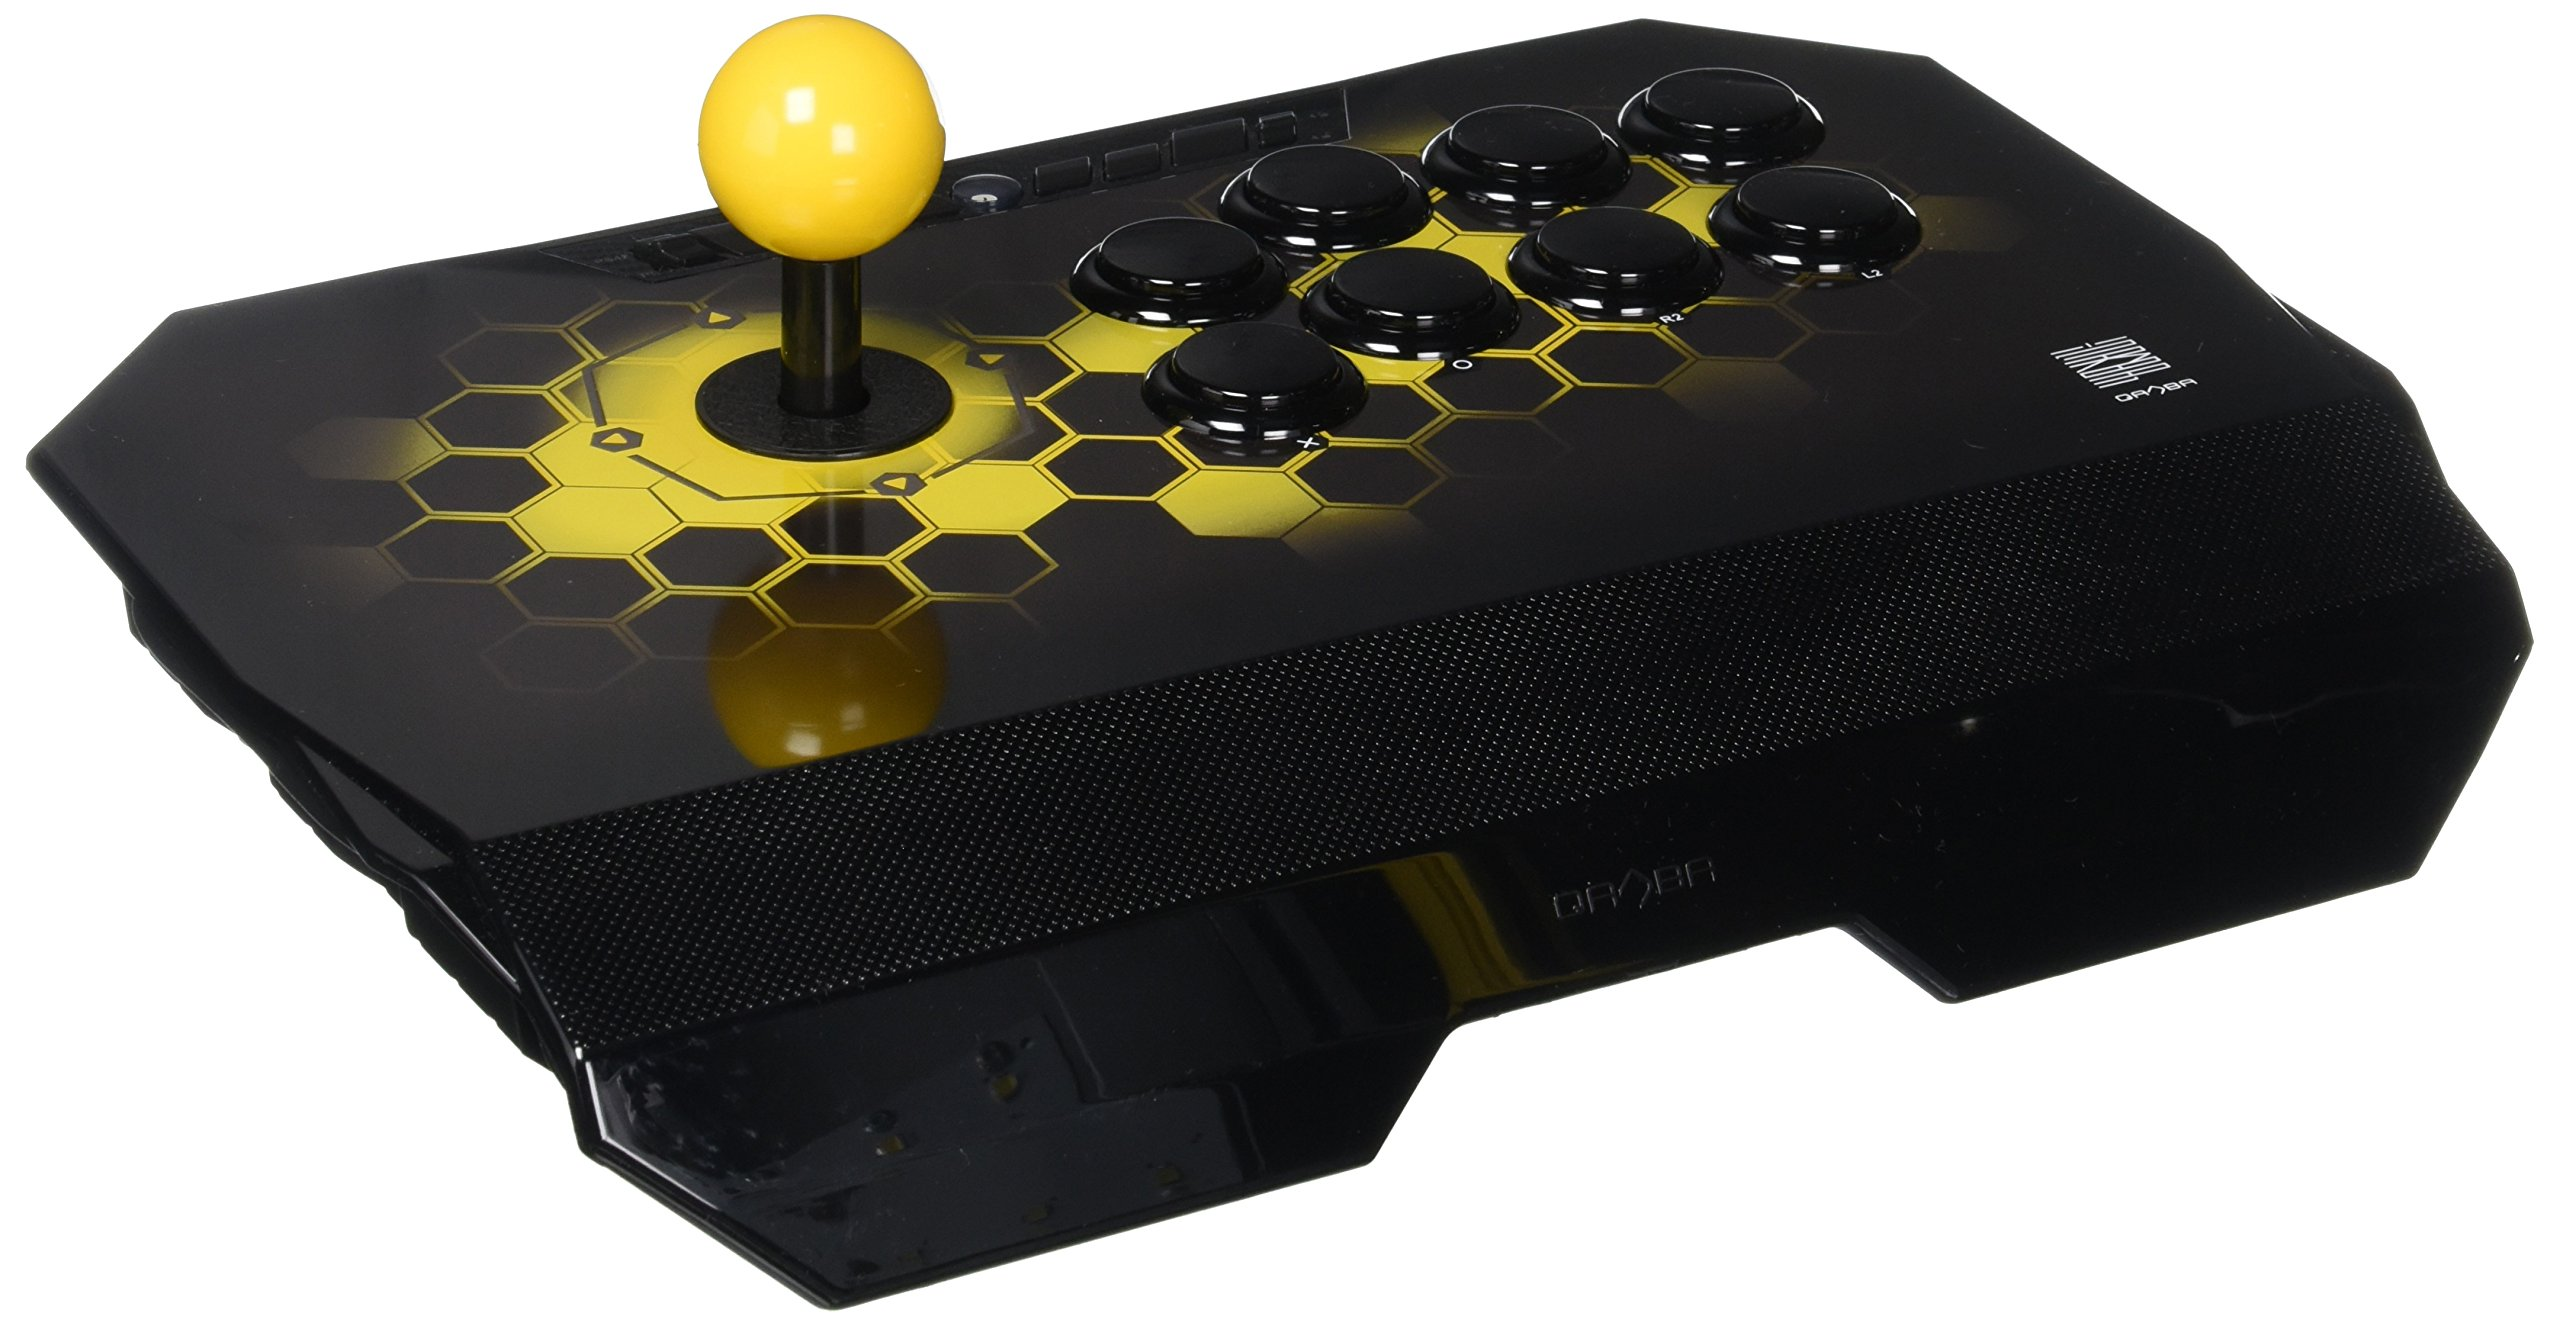 Qanba Drone Joystick / Fighting Stick - Ps4 / Ps3